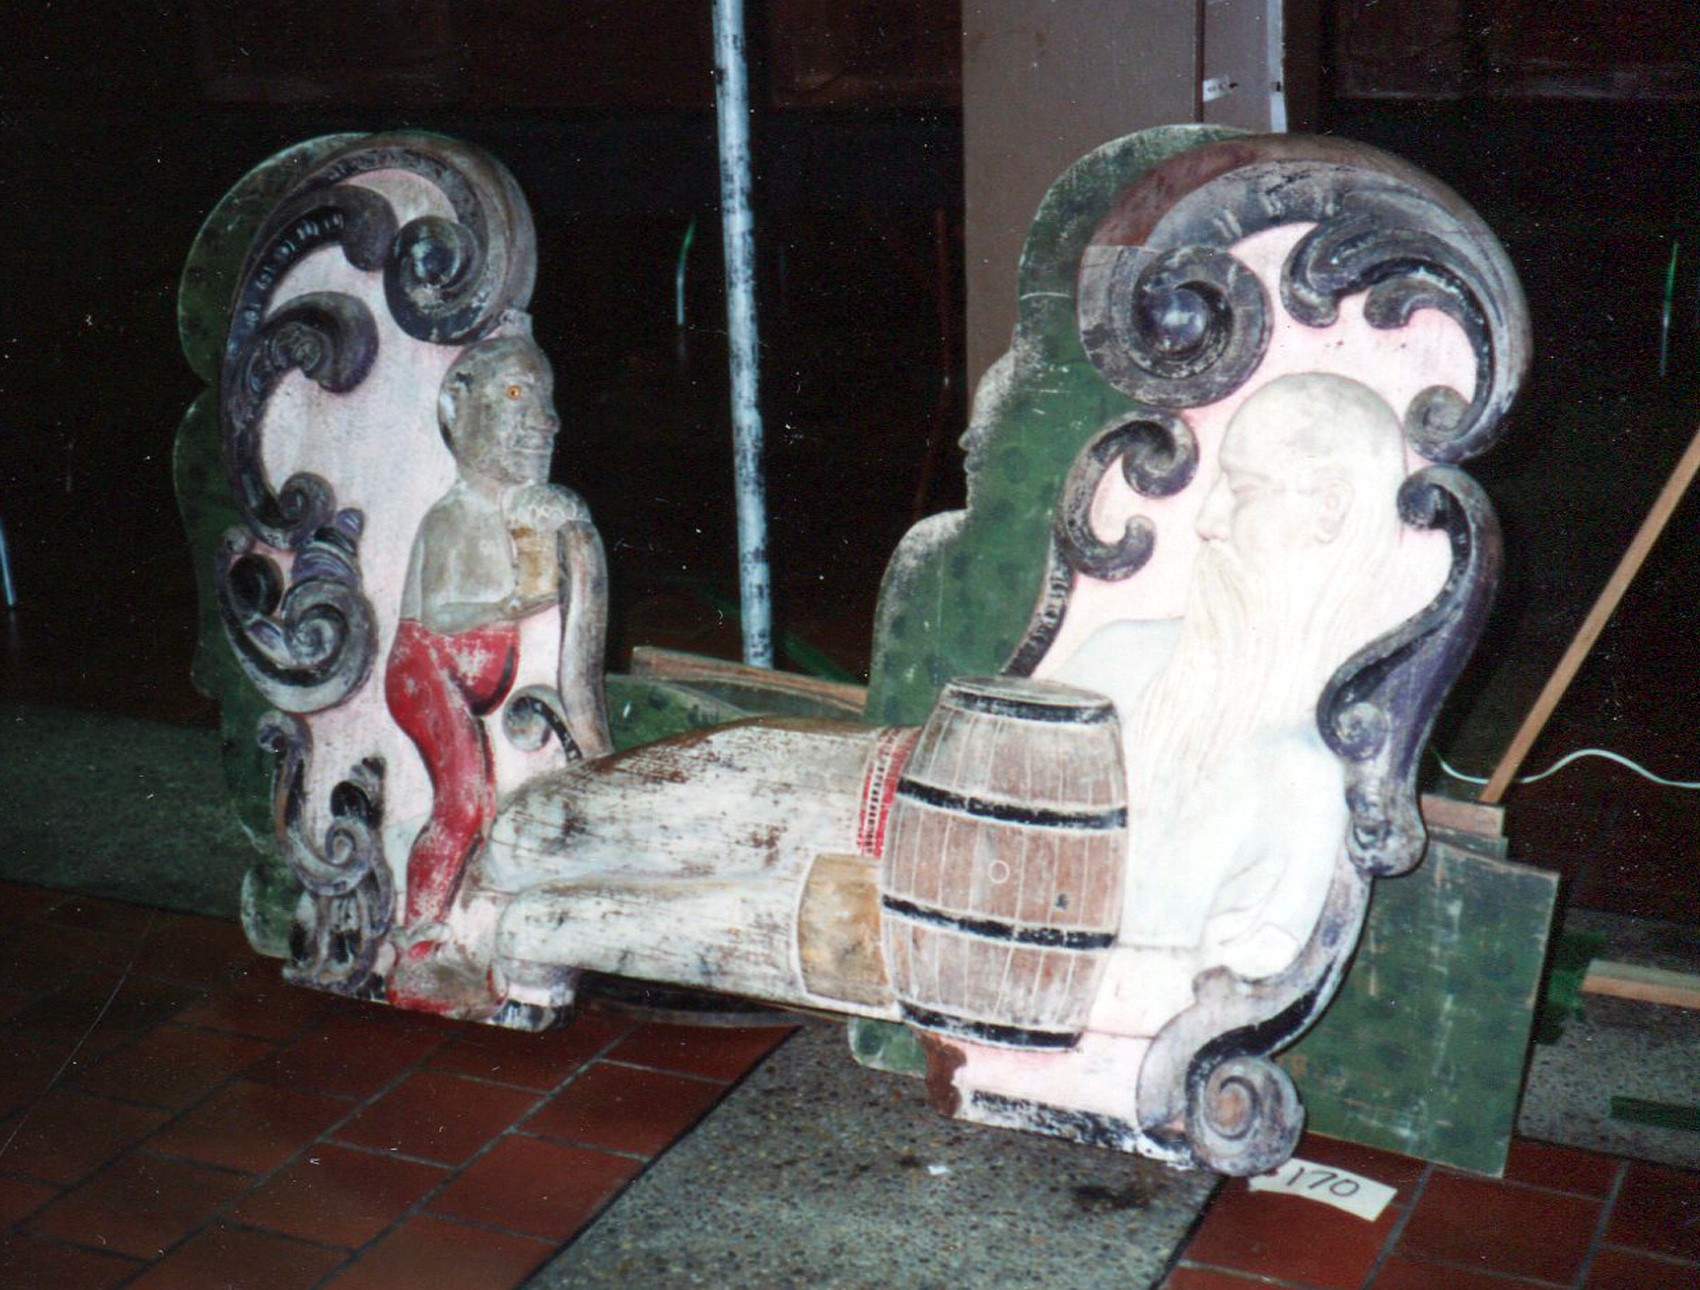 Antique-carousel-chariot-Guernsey-auction-1989